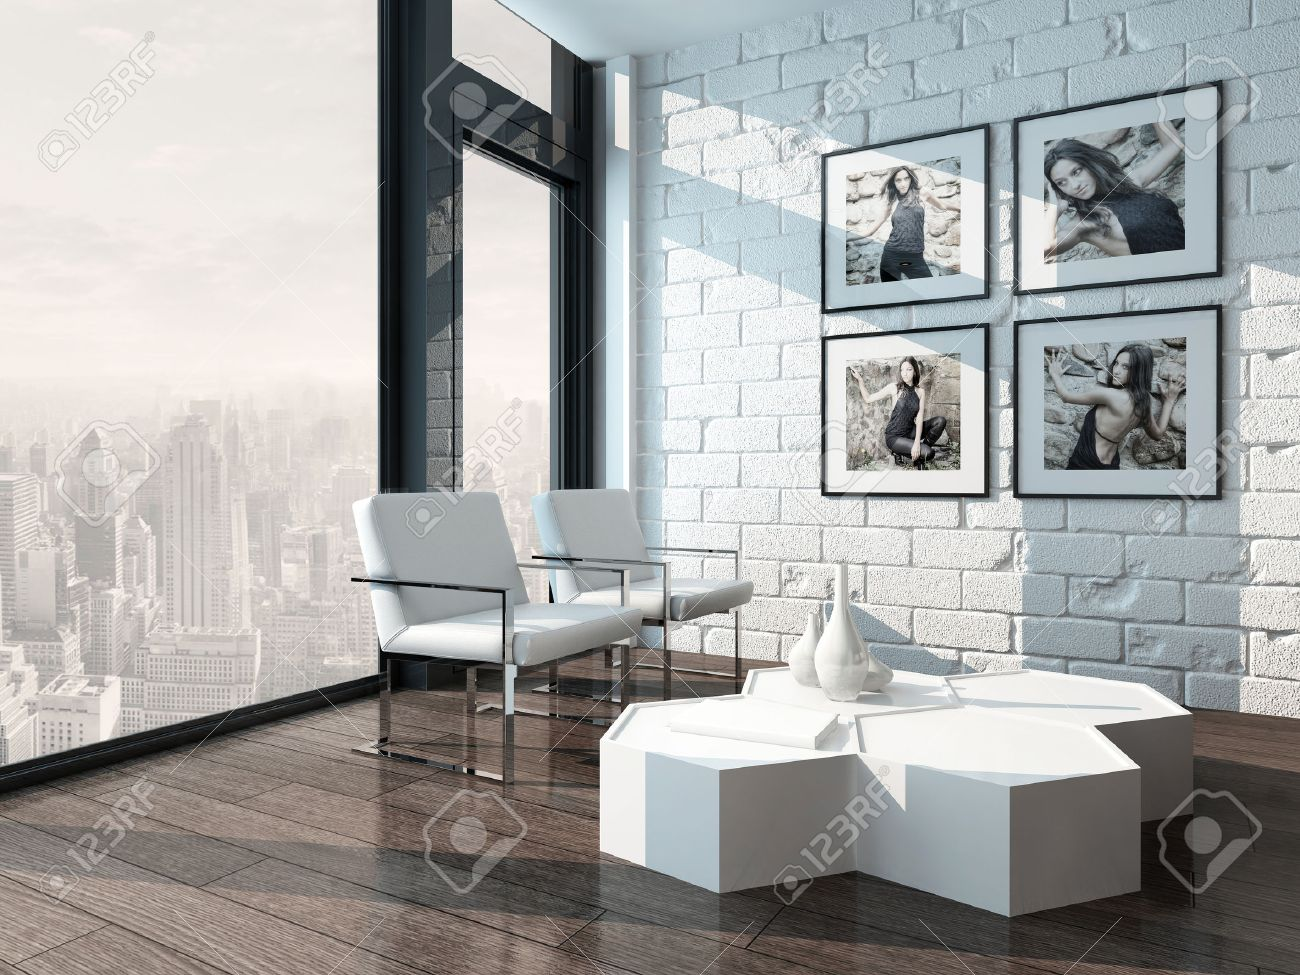 Minimalist Living Room Interior With White Brick Wall And Chairs Stock  Photo   28685634